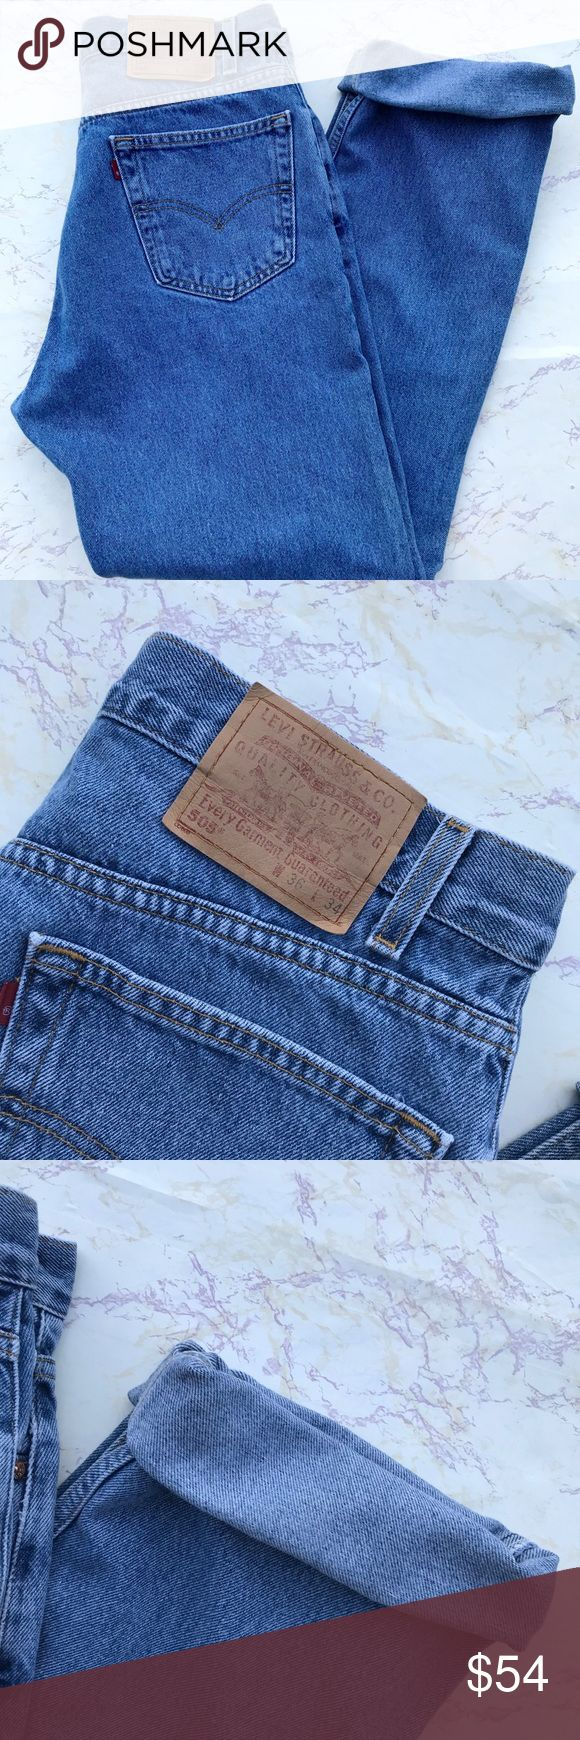 Vintage Levi's 550 Mom Jeans Vintage Levi's 550 high waist mom jeans. Regular fit straight leg. Classic regular wash denim. Tag size 36x34. These are vintage so the waist measures smaller than the tag. The listing will reflect the true measurements. Waist 33. Inseam 34. Rise 12. Perfect for the fall. Dress them up or keep them casual. 100% cotton Levi's Jeans Straight Leg